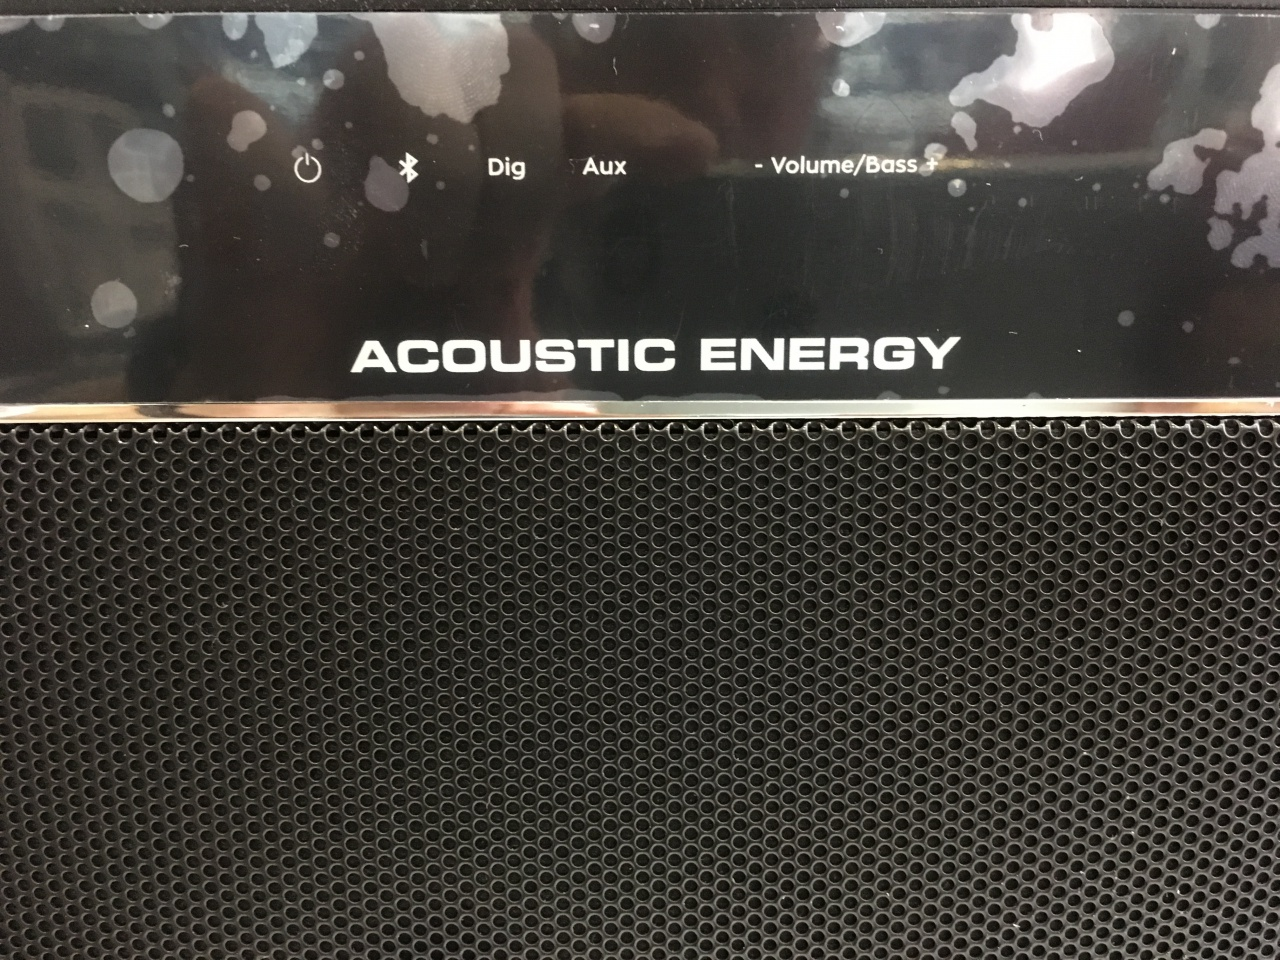 AcousticEnergySound3ar-4.jpeg